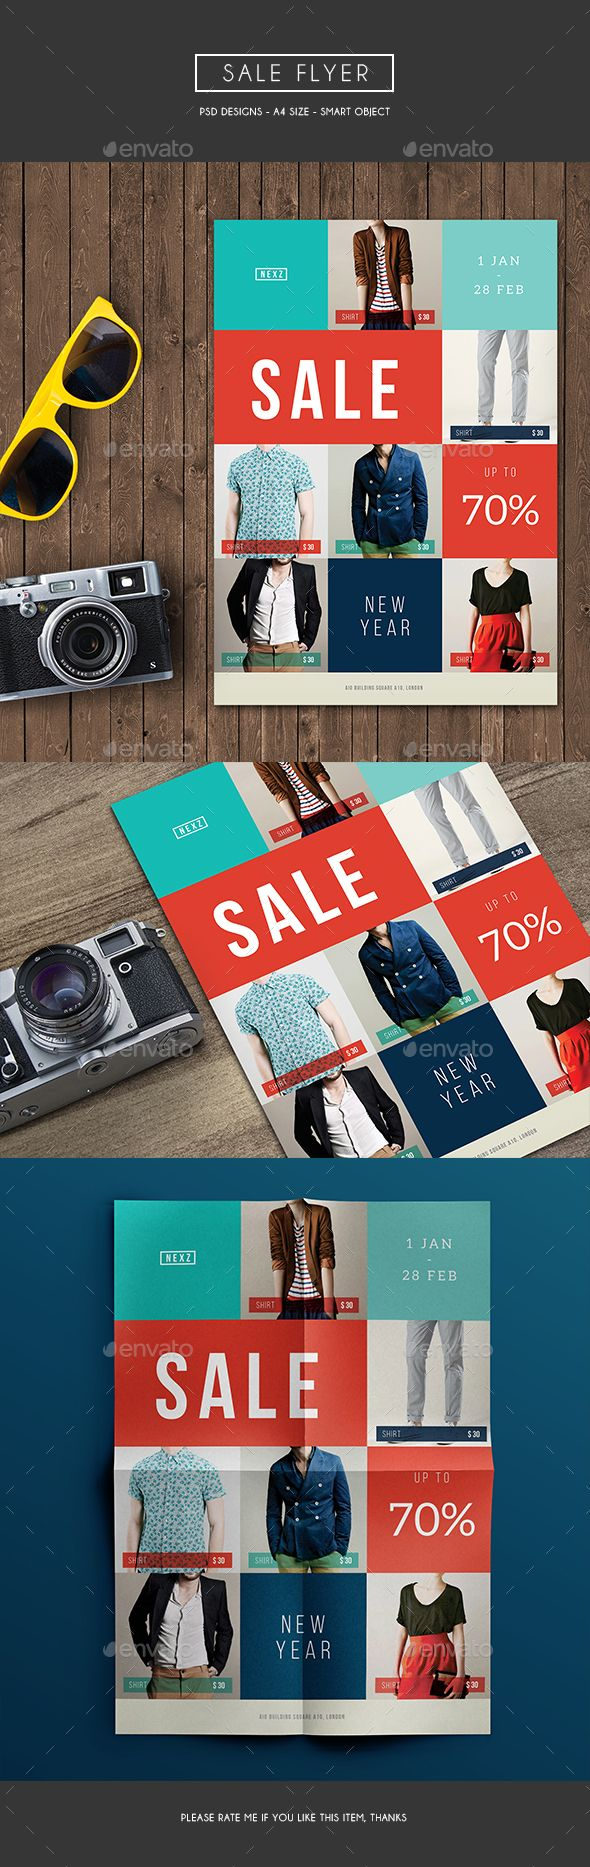 Sale Flyer, can be used for your promo/discount program in your store. It looks simple with geometric shape and colorful File Features :   Size A4 (8.211.6 In)   0,25 In Bleed area  CMYK / 300 dpi  Smart Object Image  Customizable Text  PSD file   Font Dow